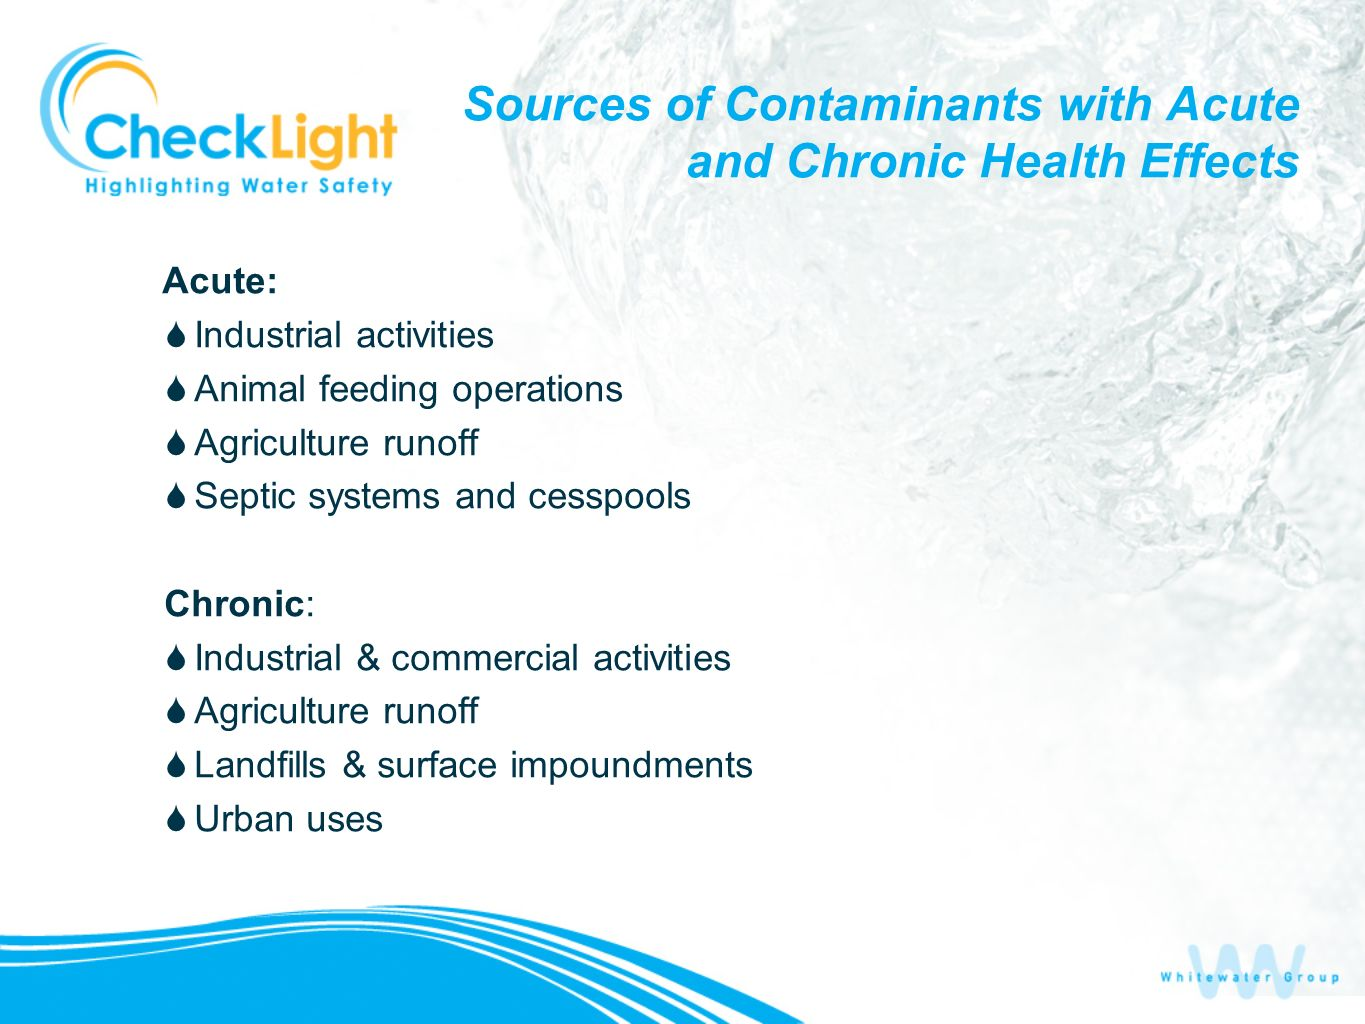 Sources of Contaminants with Acute and Chronic Health Effects Acute: Industrial activities Animal feeding operations Agriculture runoff Septic systems and cesspools Chronic: Industrial & commercial activities Agriculture runoff Landfills & surface impoundments Urban uses